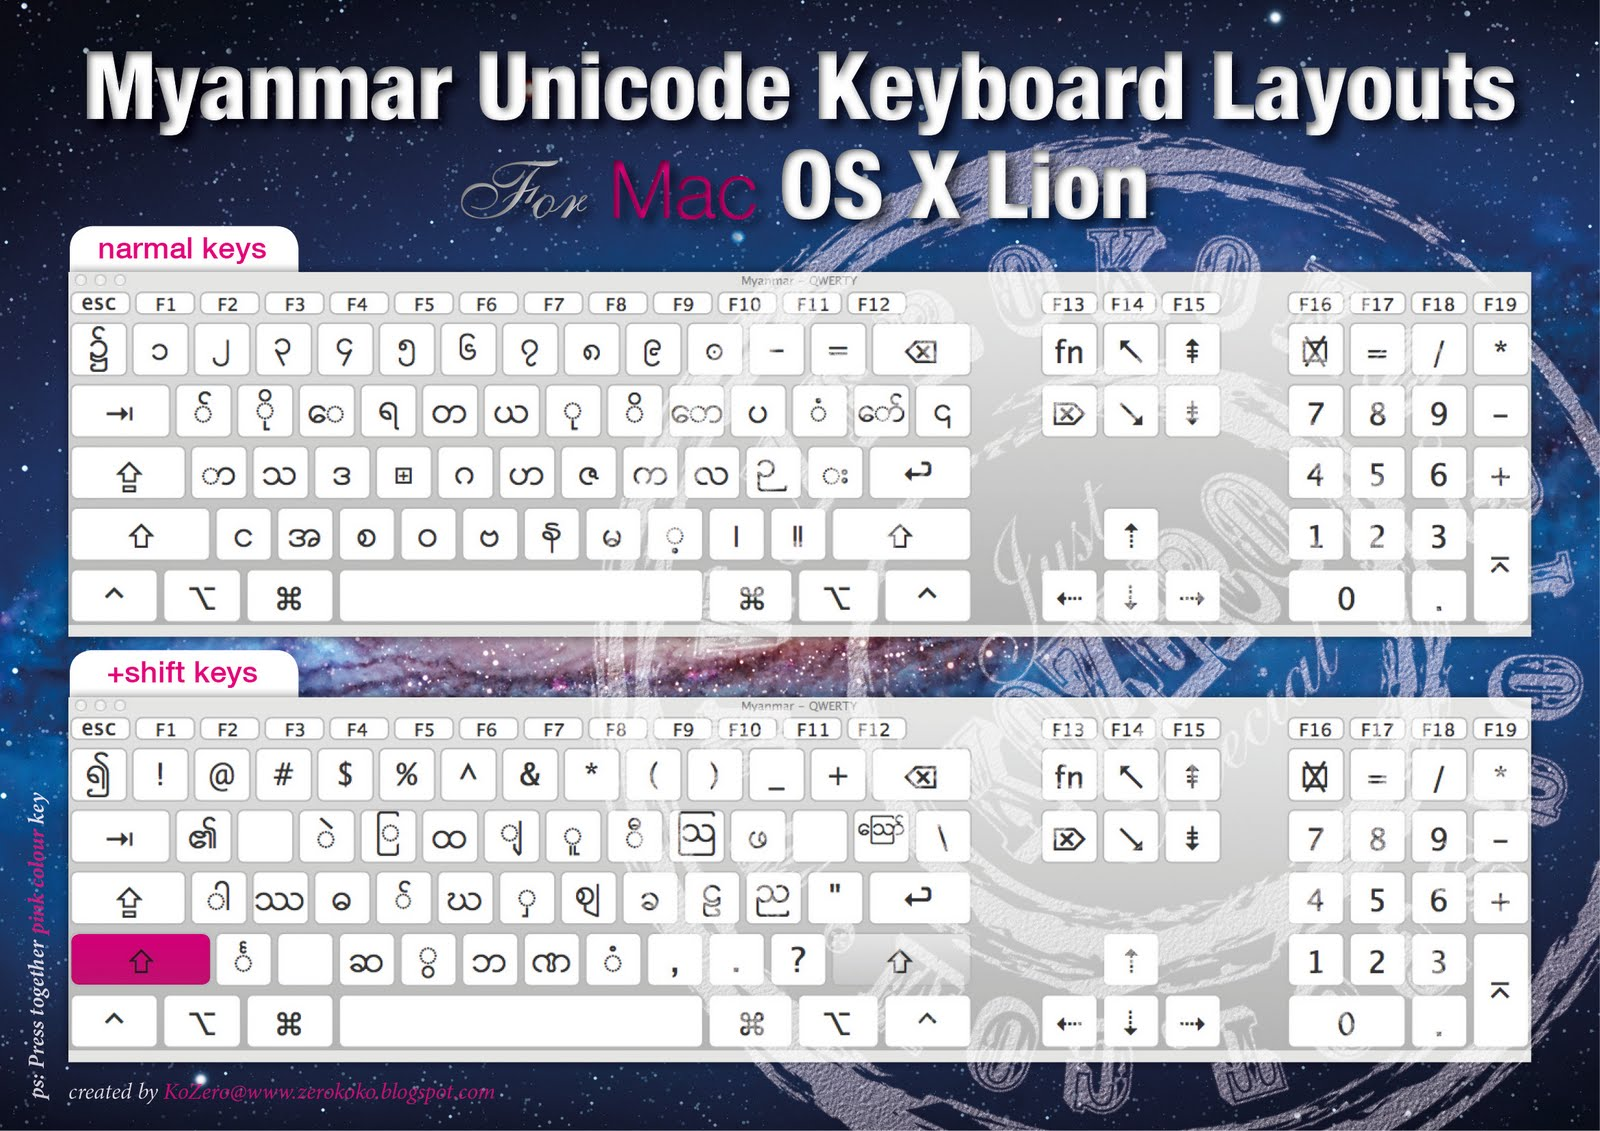 Myanmar Unicode Keyboard Layout in Mac OS X Lion